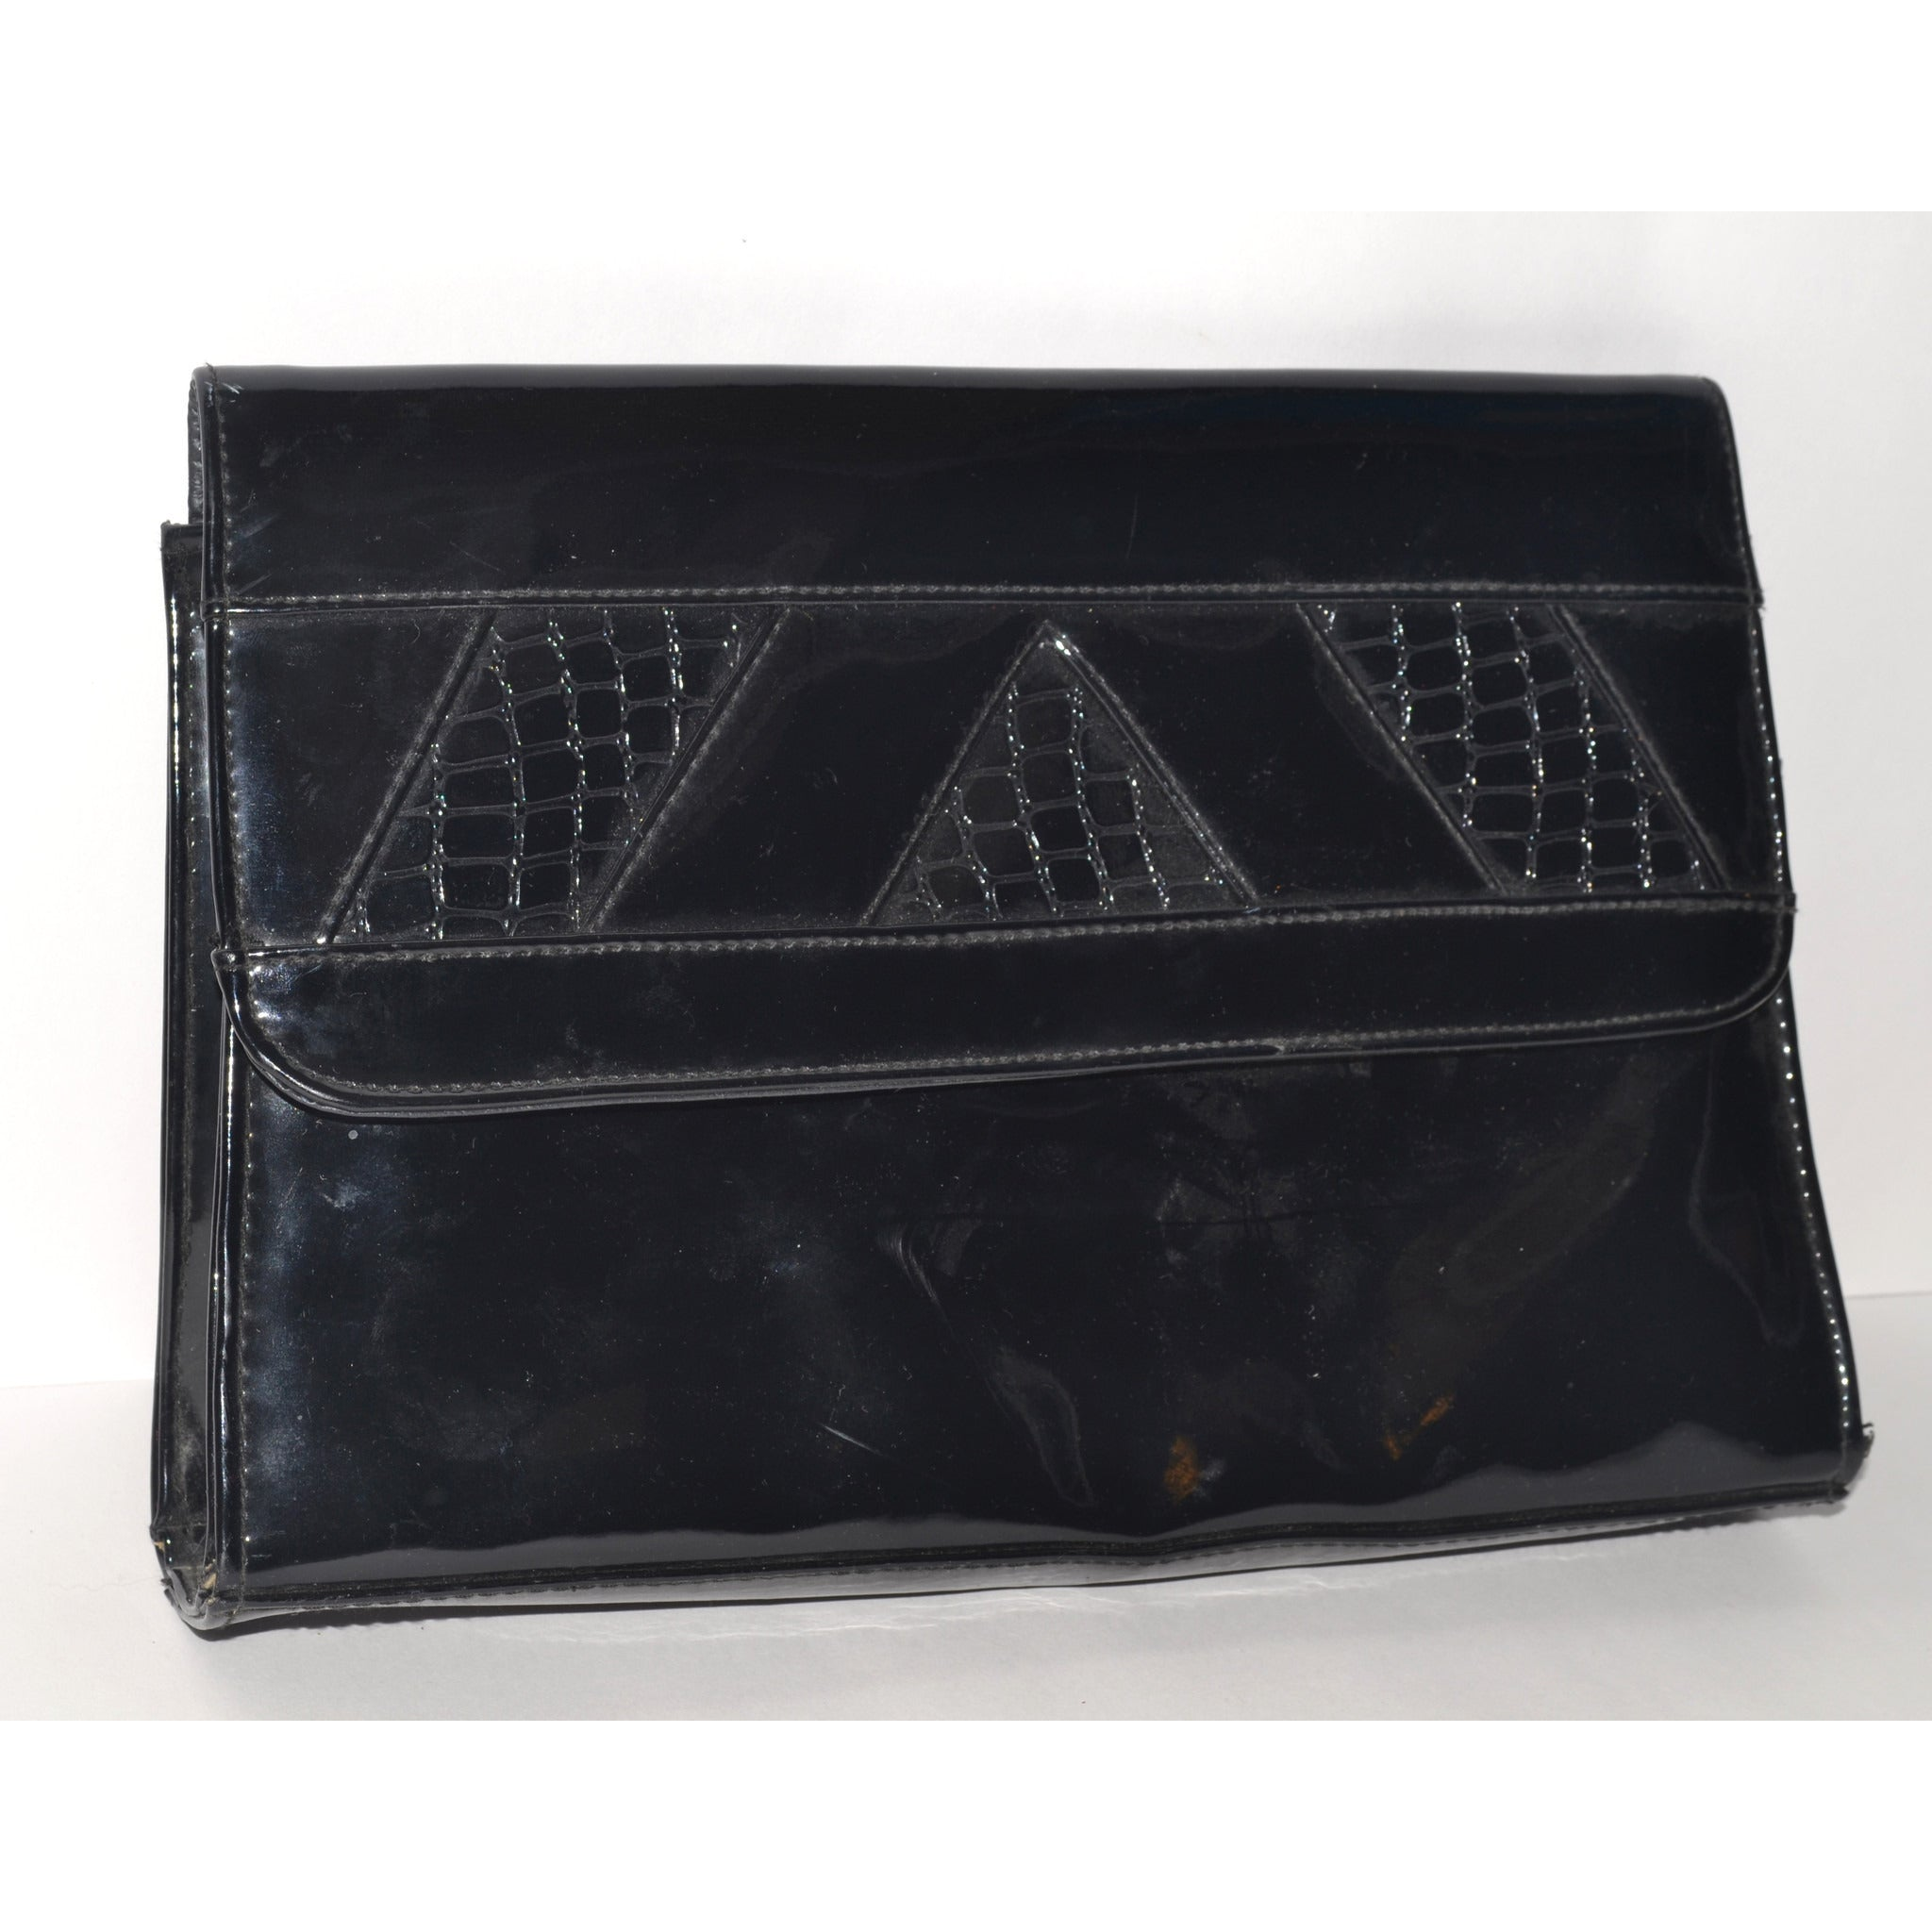 Vintage Black High Gloss Clutch Purse